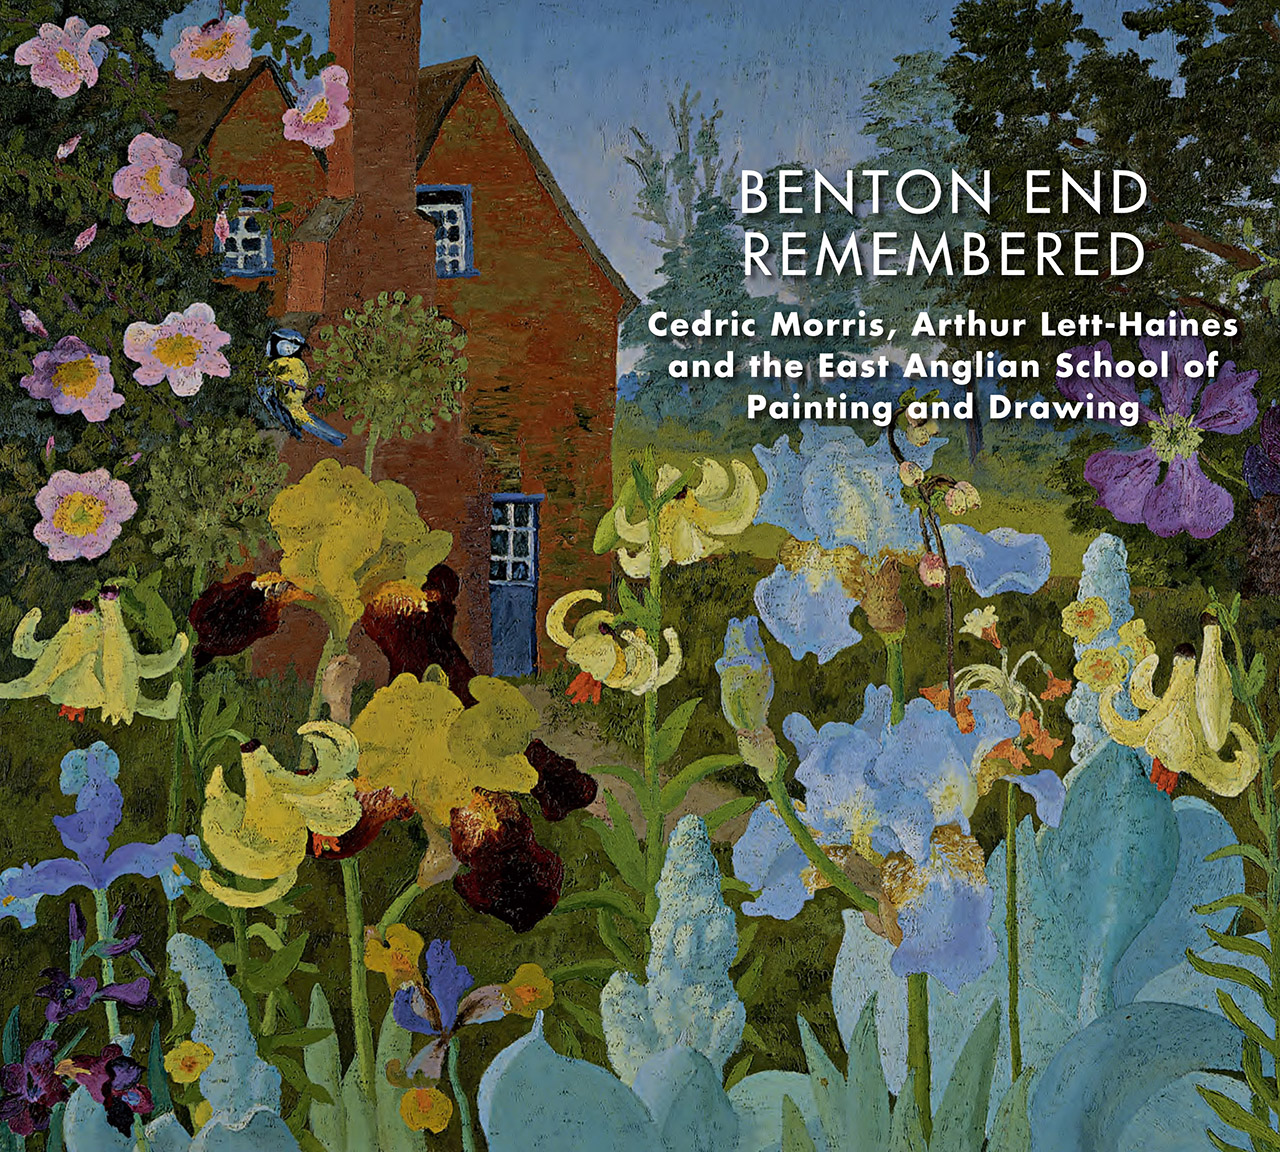 Benton End Remembered: Cedric Morris, Arthur Lett-Haines, and the East Anglian School of Painting and Drawing